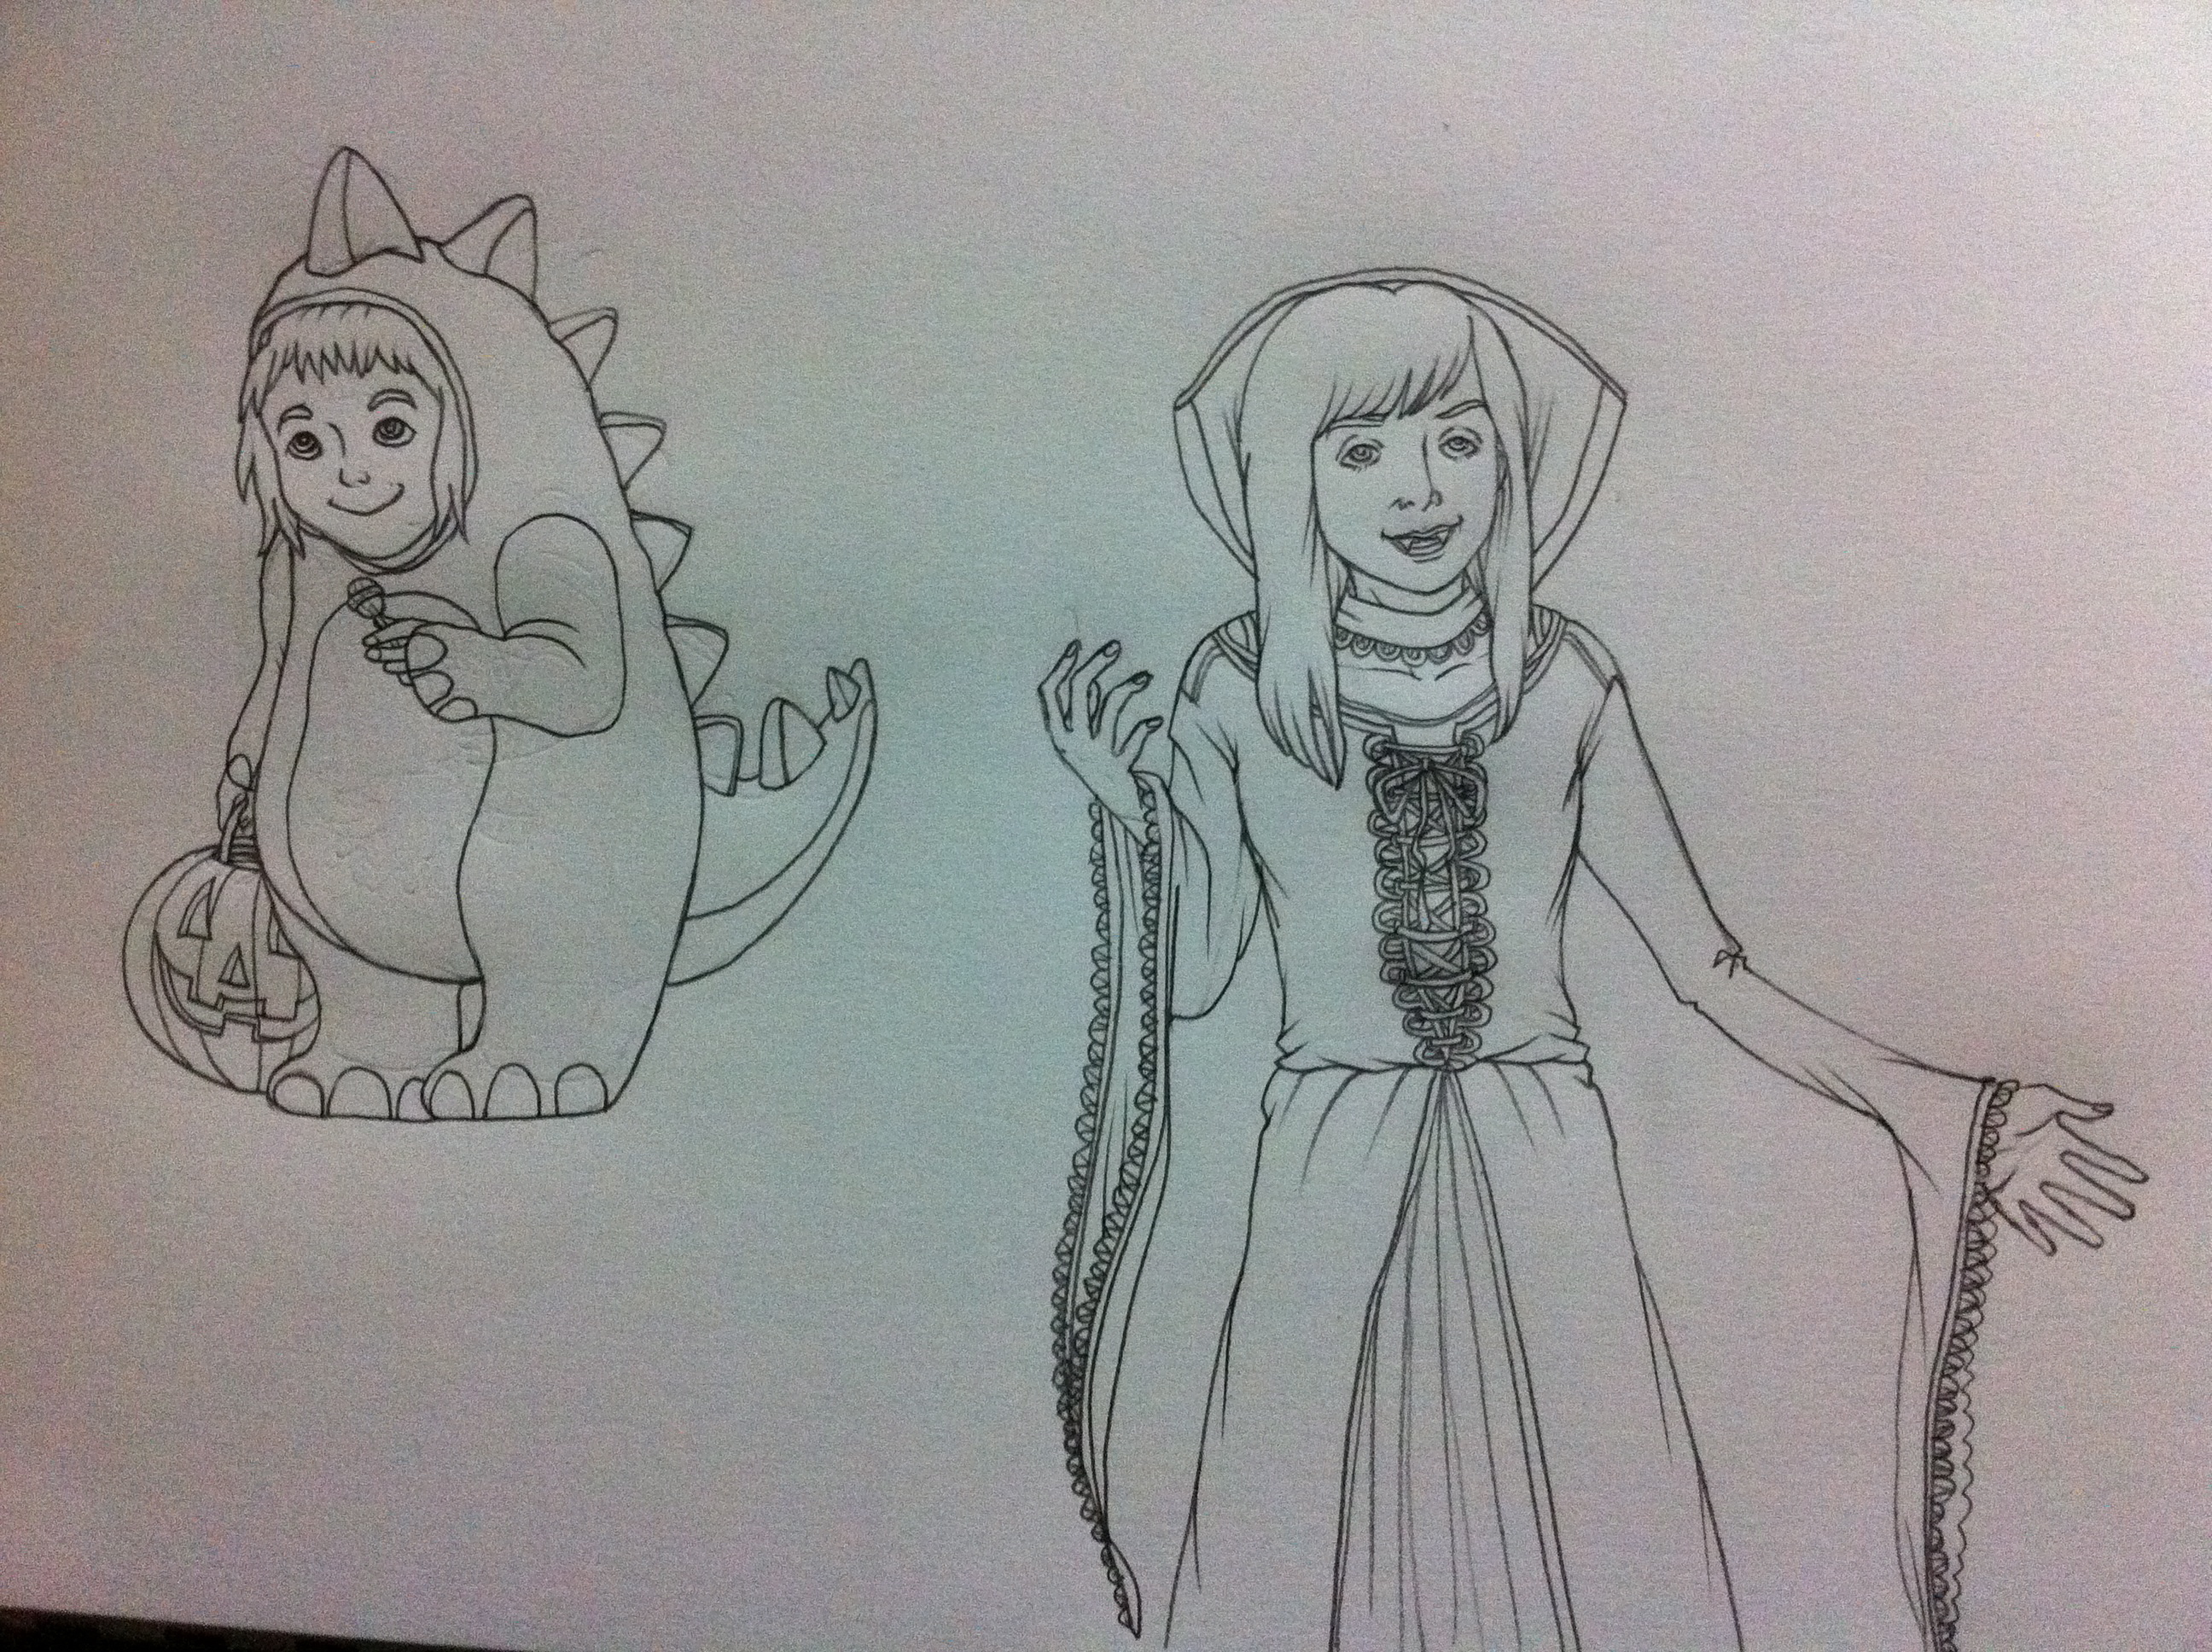 my costumes a stegosaurus at age 5 6 left and vampiress in middle school drawn by melodie miu